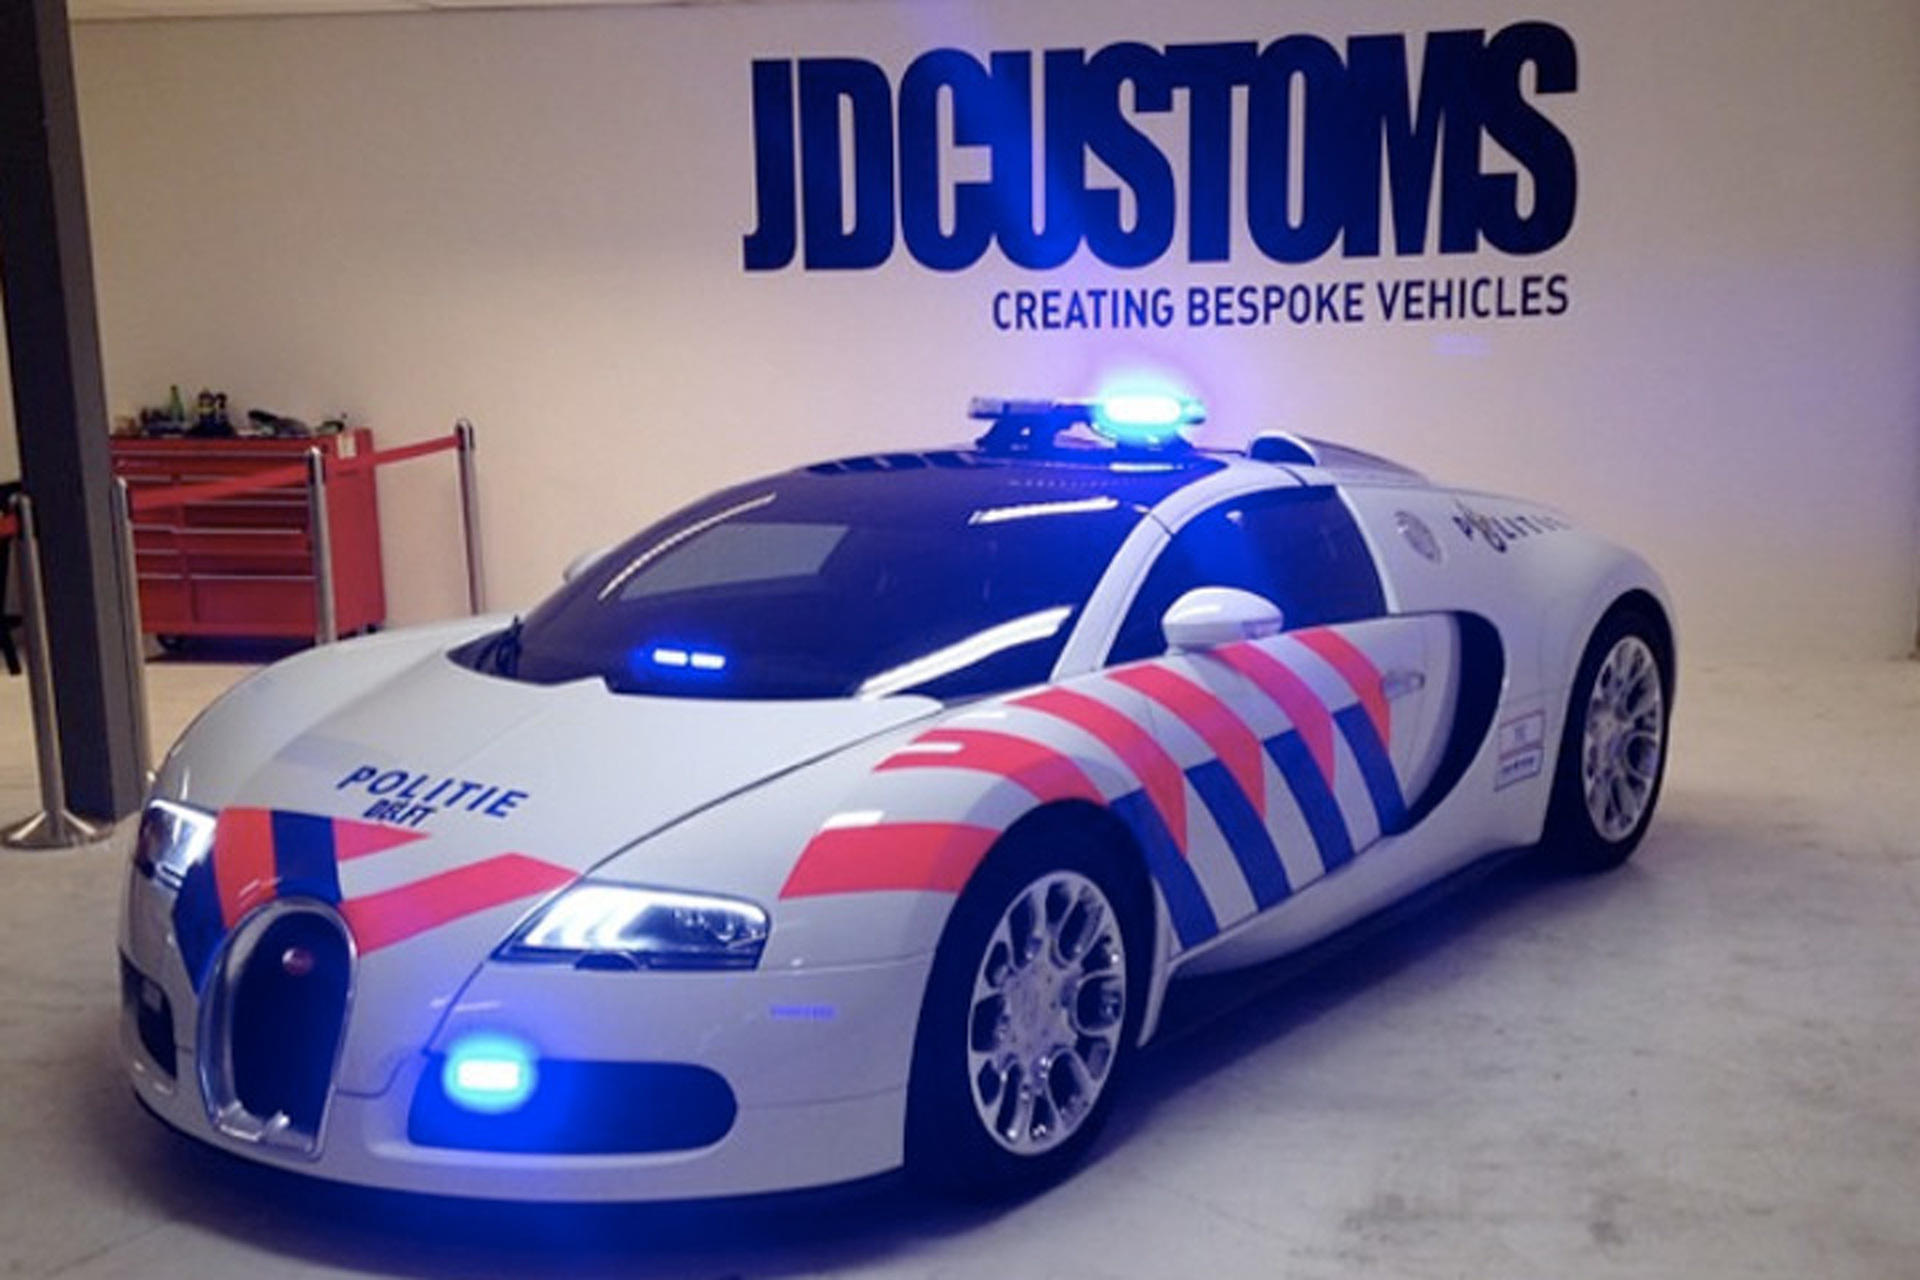 Pull Over! This Bugatti Veyron got a Dutch Police Makeover